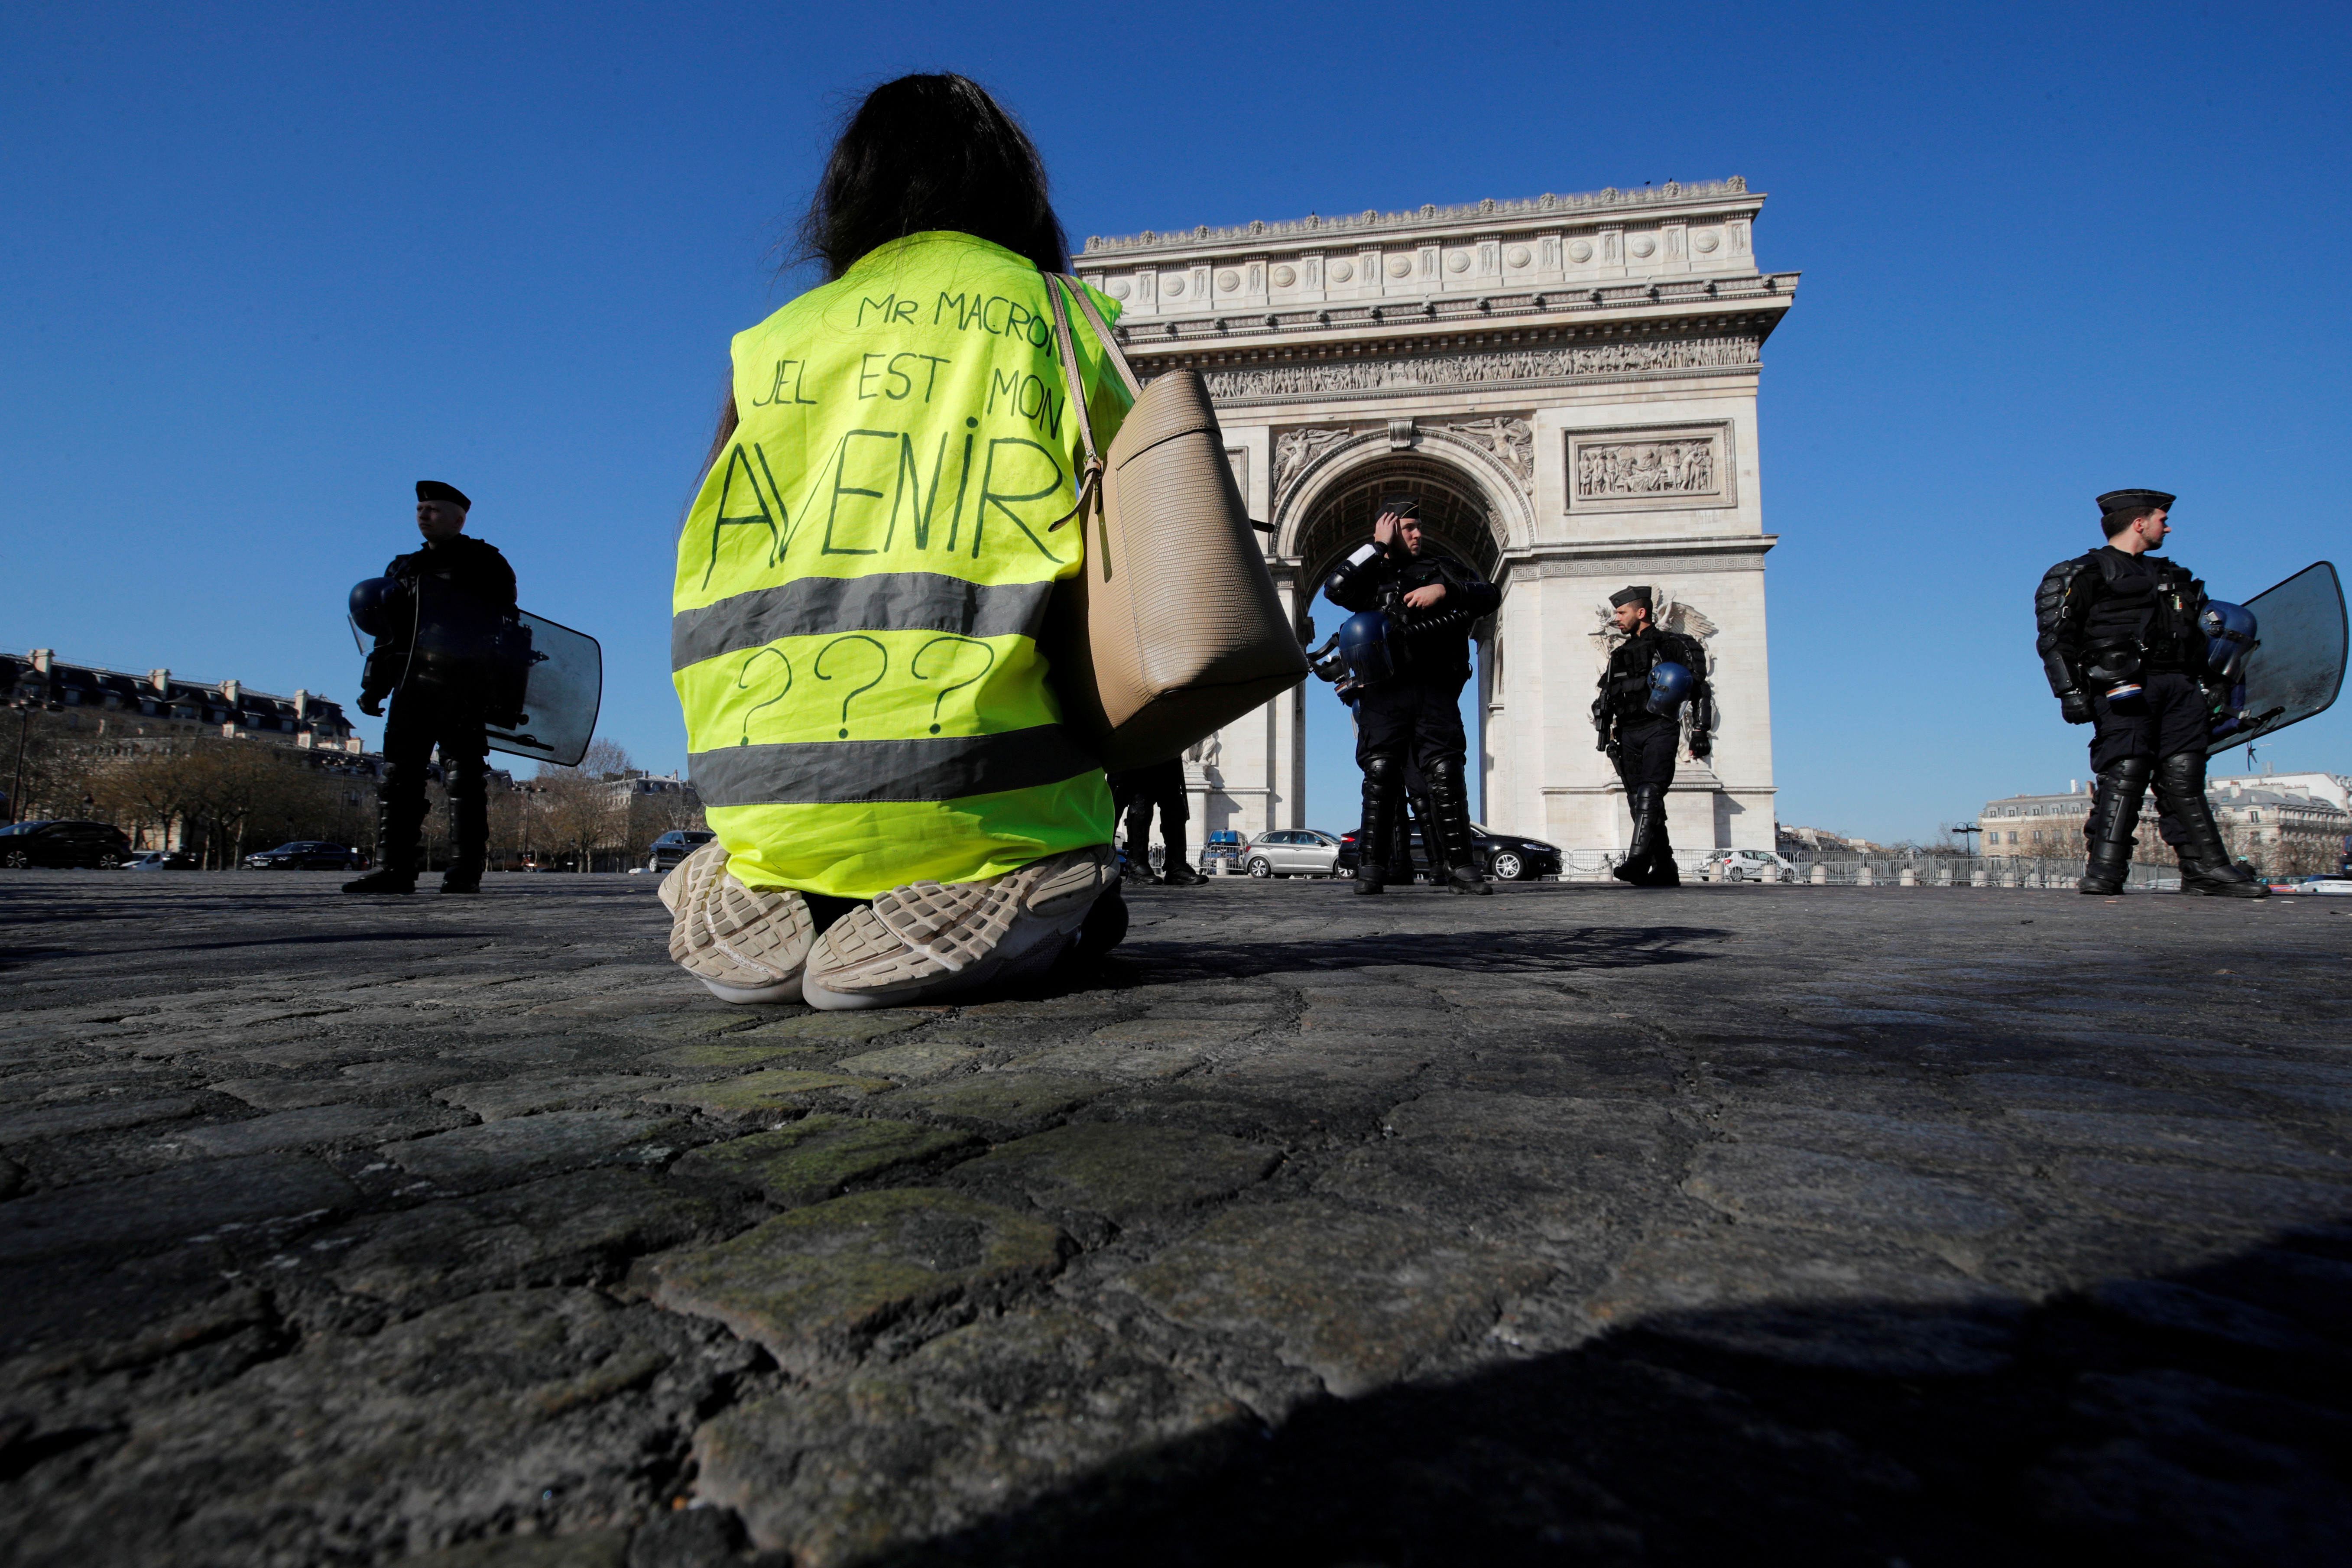 """A protester wearing a yellow vest kneels on the Champs Elysees near the Arc de Triomphe during a demonstration by the """"yellow vests"""" movement in Paris, France, February 23, 2019. Message reads, """"Mr Macron, What is my Future"""".  REUTERS/Philippe Wojazer     TPX IMAGES OF THE DAY - RC1A56F17E90"""